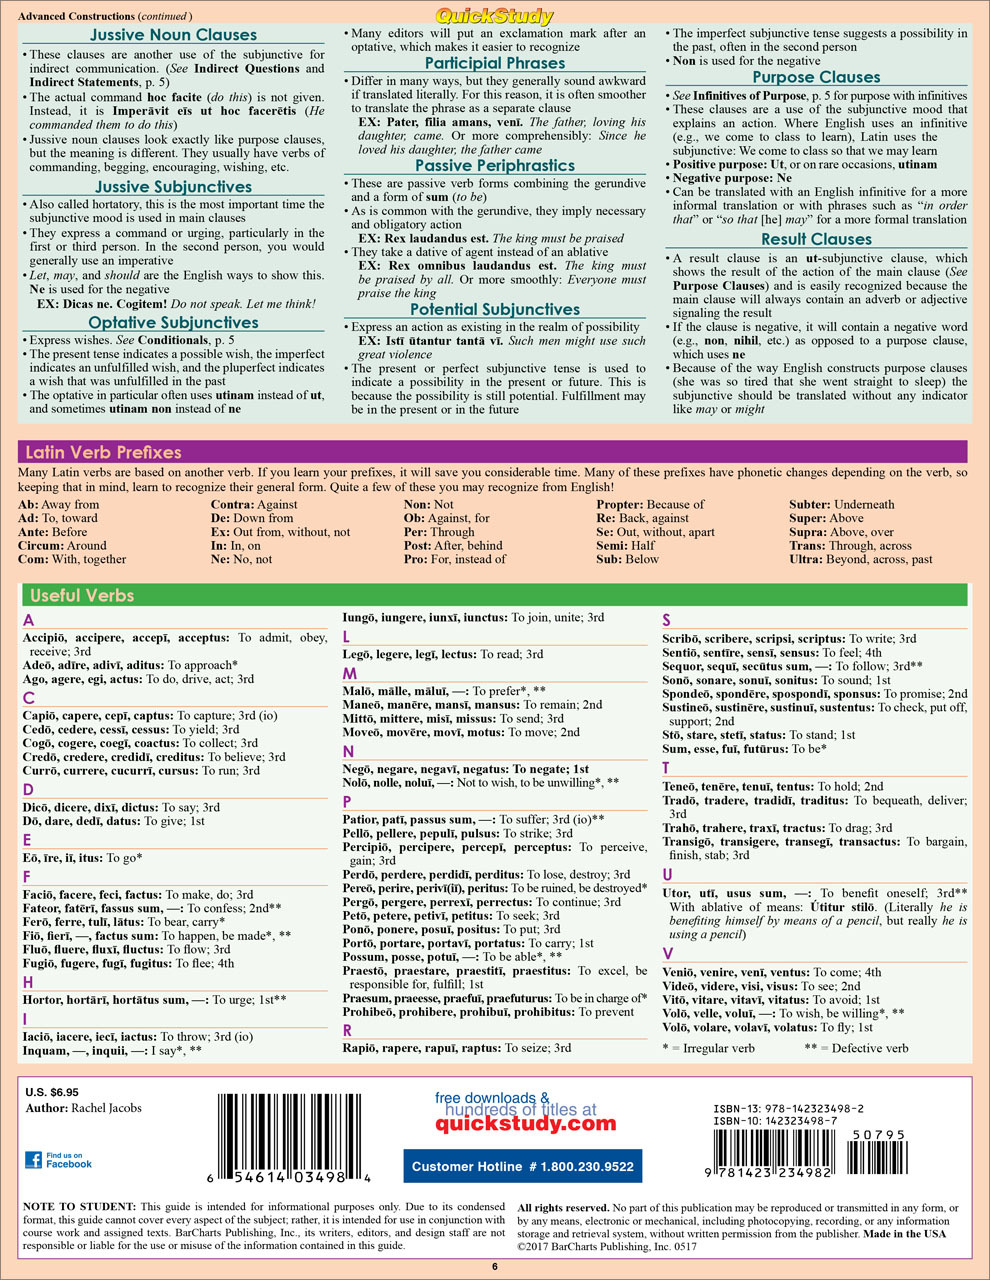 Quick Study QuickStudy Latin Verbs Laminated Study Guide BarCharts Publishing Foreign Language Guide Back Image